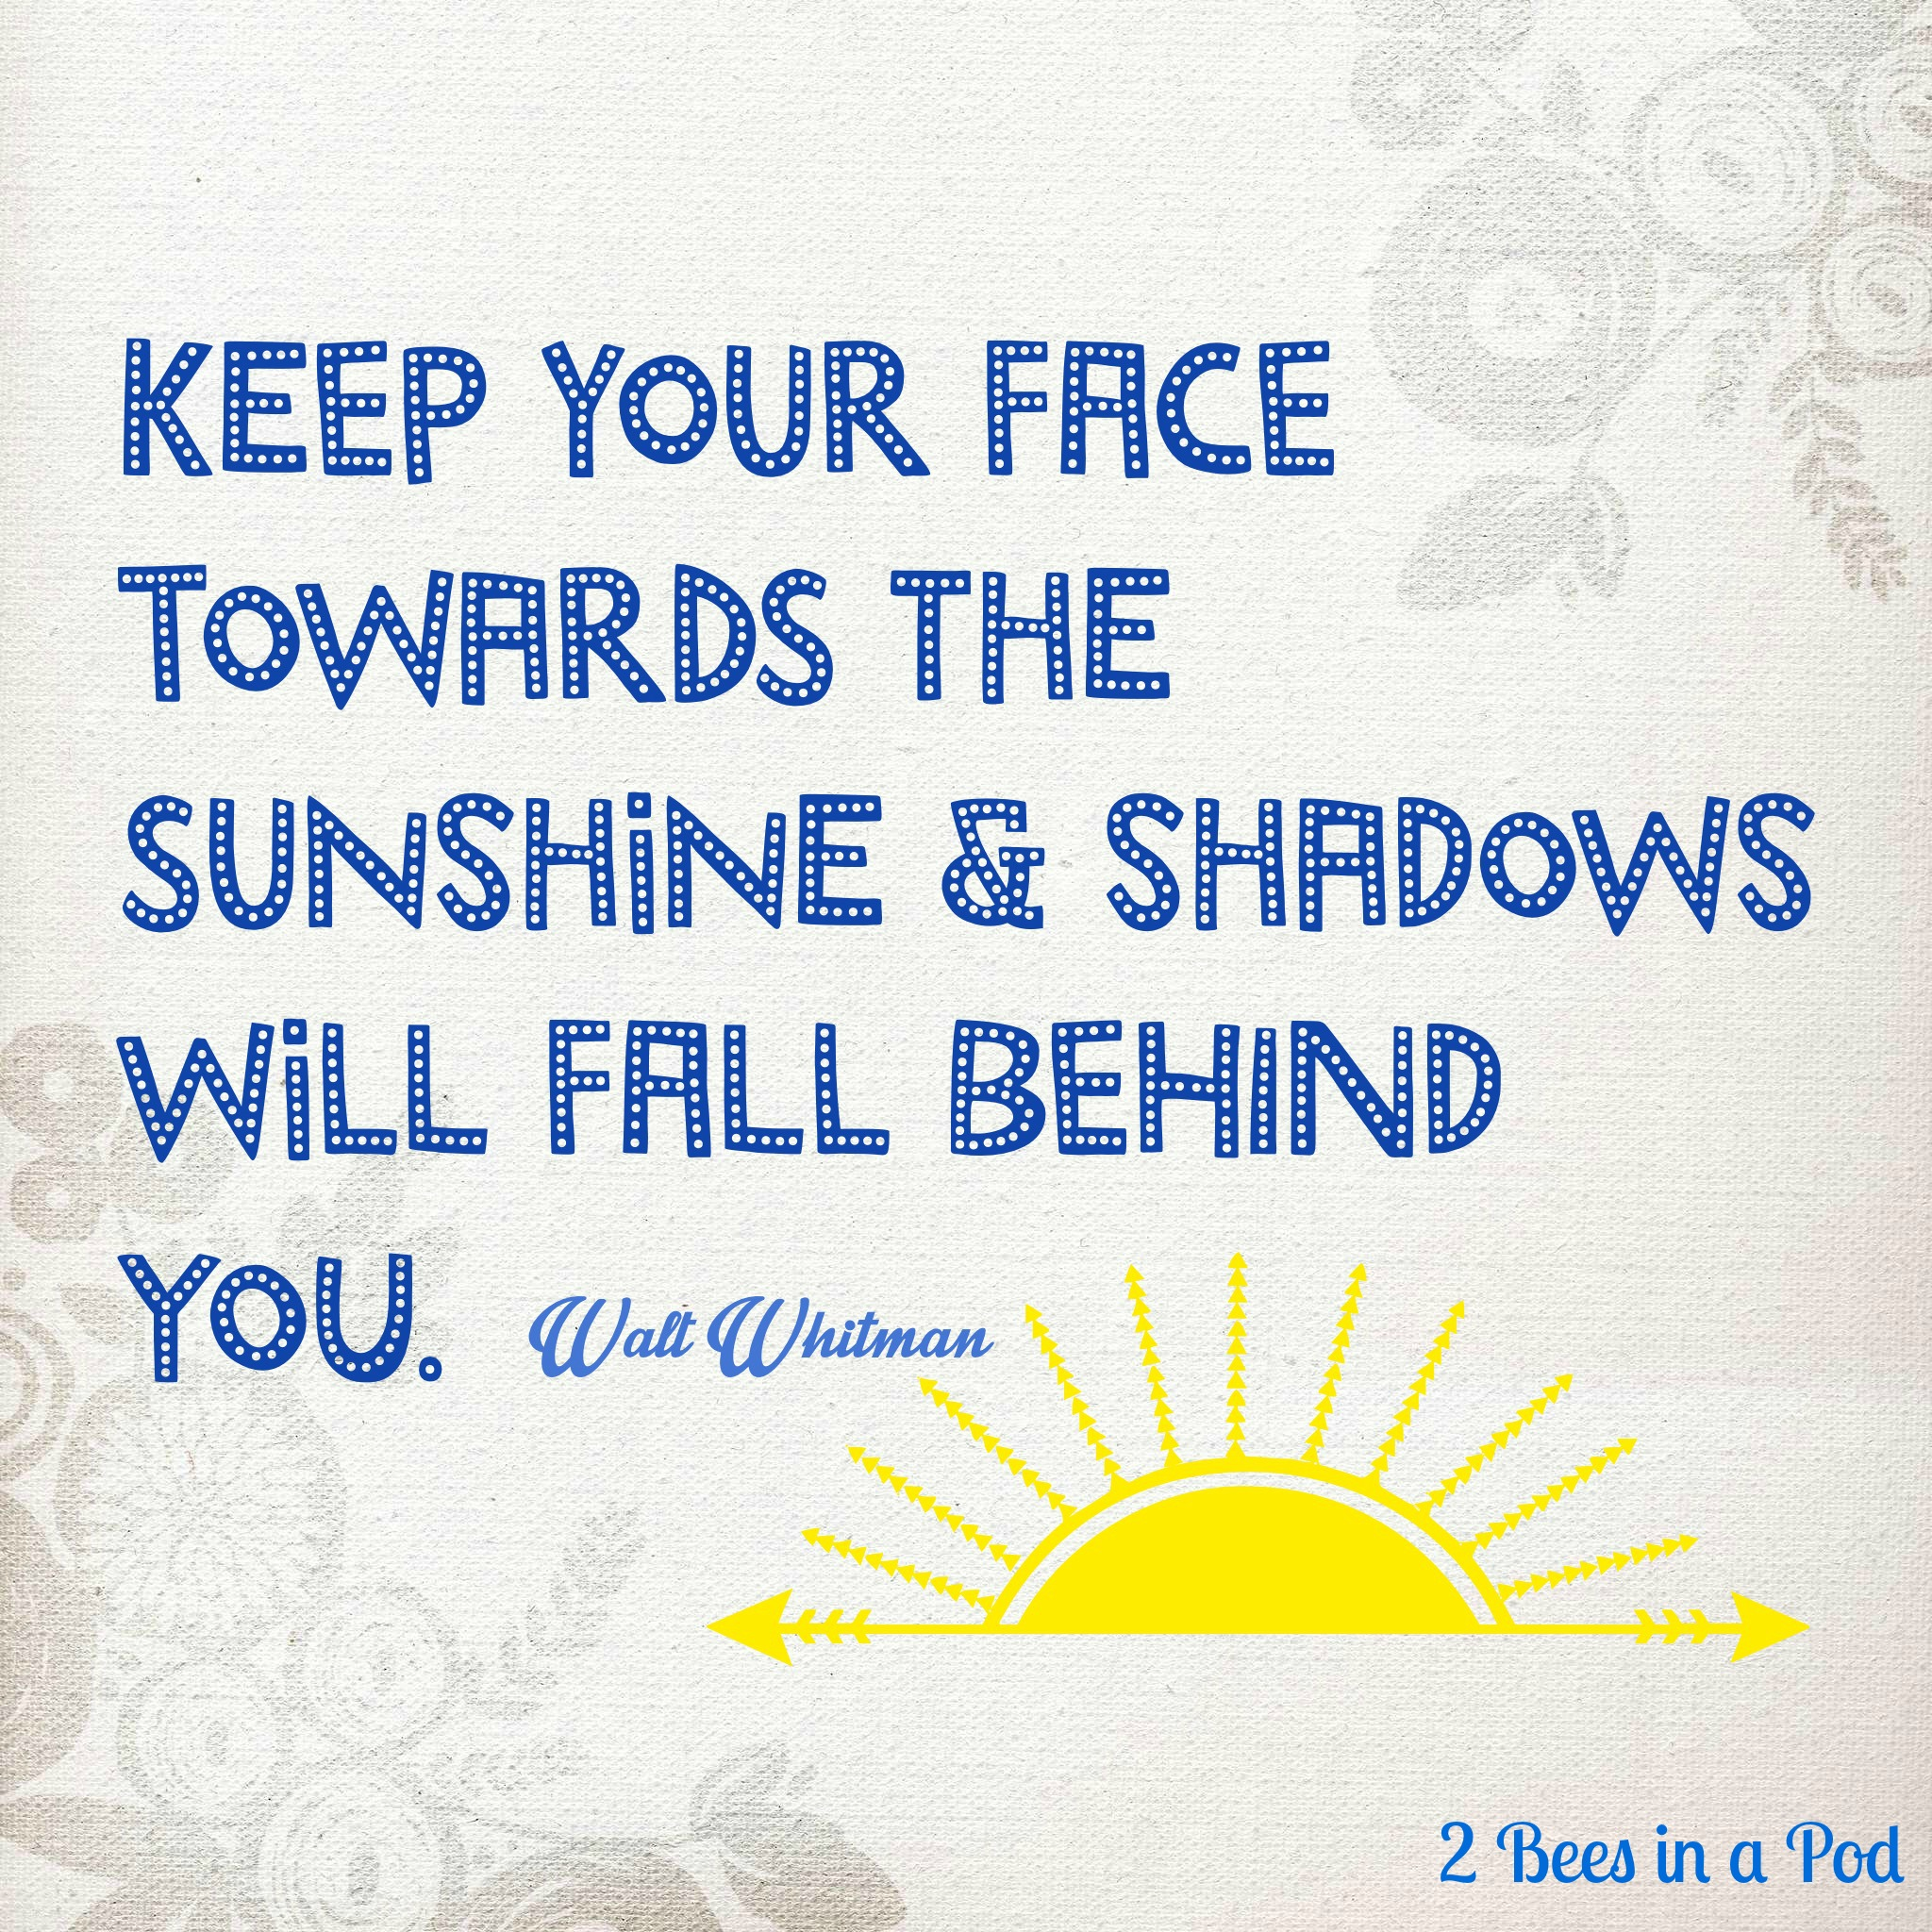 Favorite Quote - Keep Your Face Towards The Sunshine & Shadows Will Fall Behind - Walt Whitman